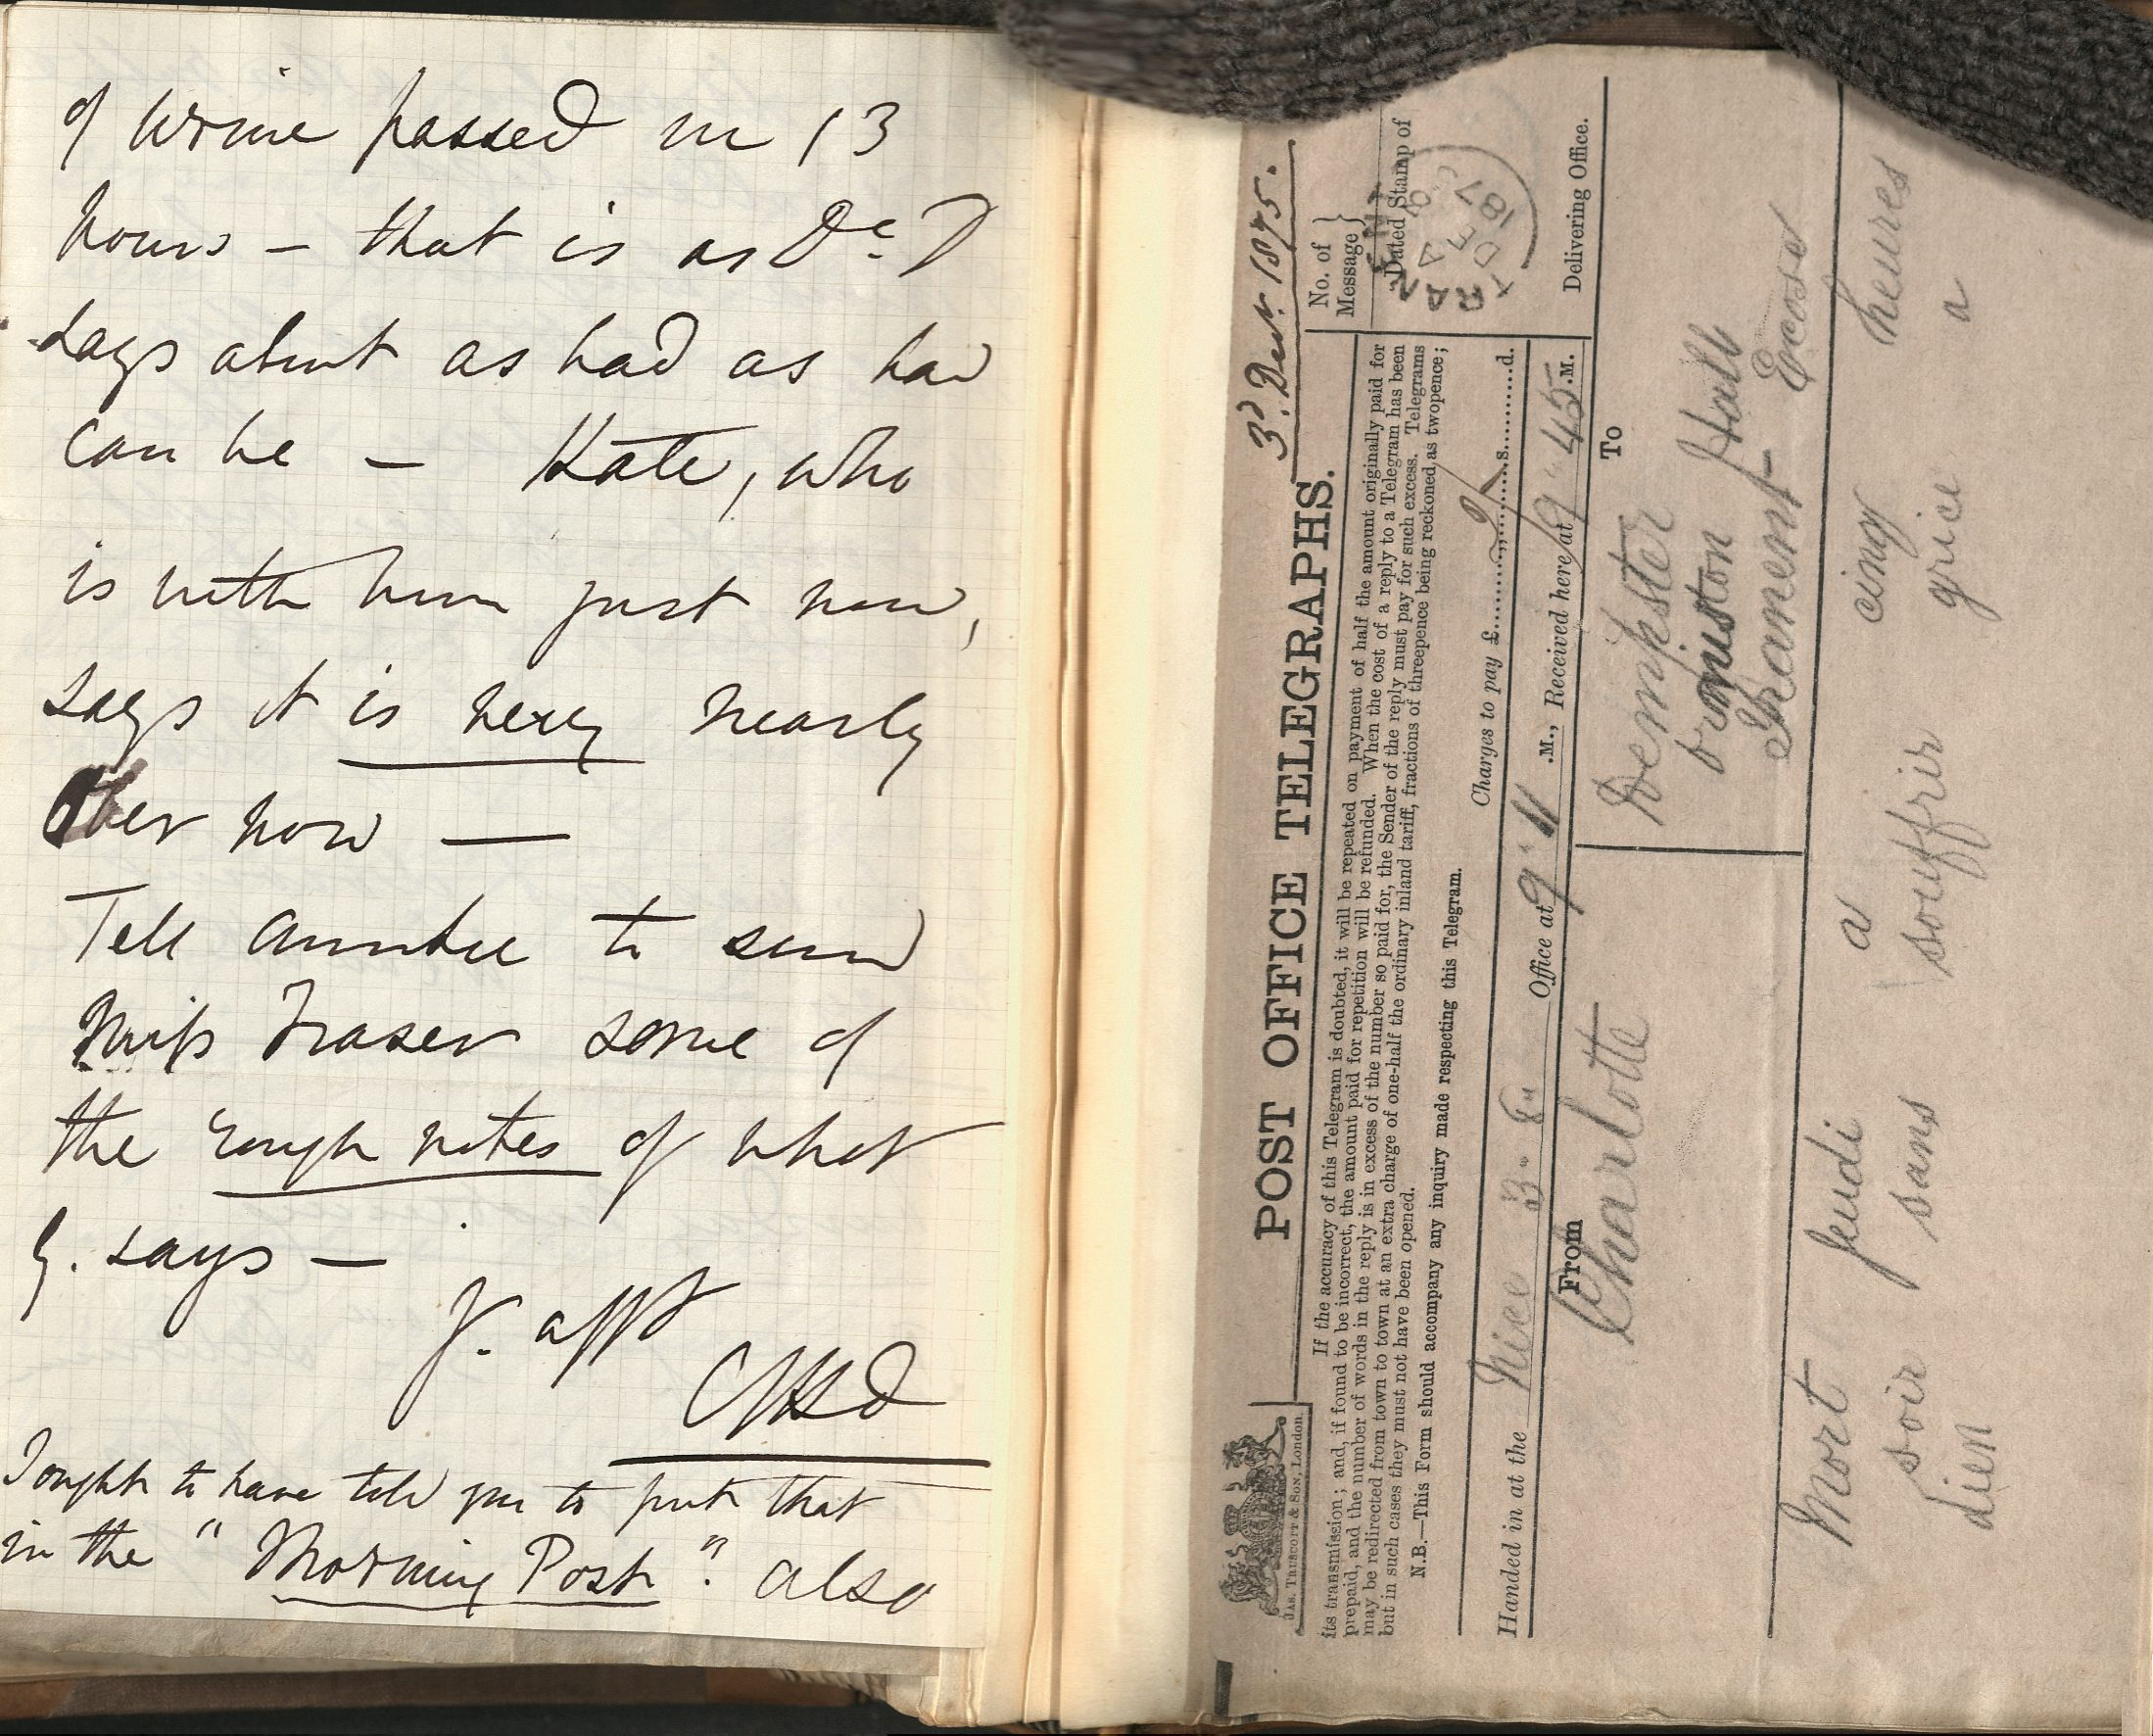 A handwritten letter and a telegram in a bound volume